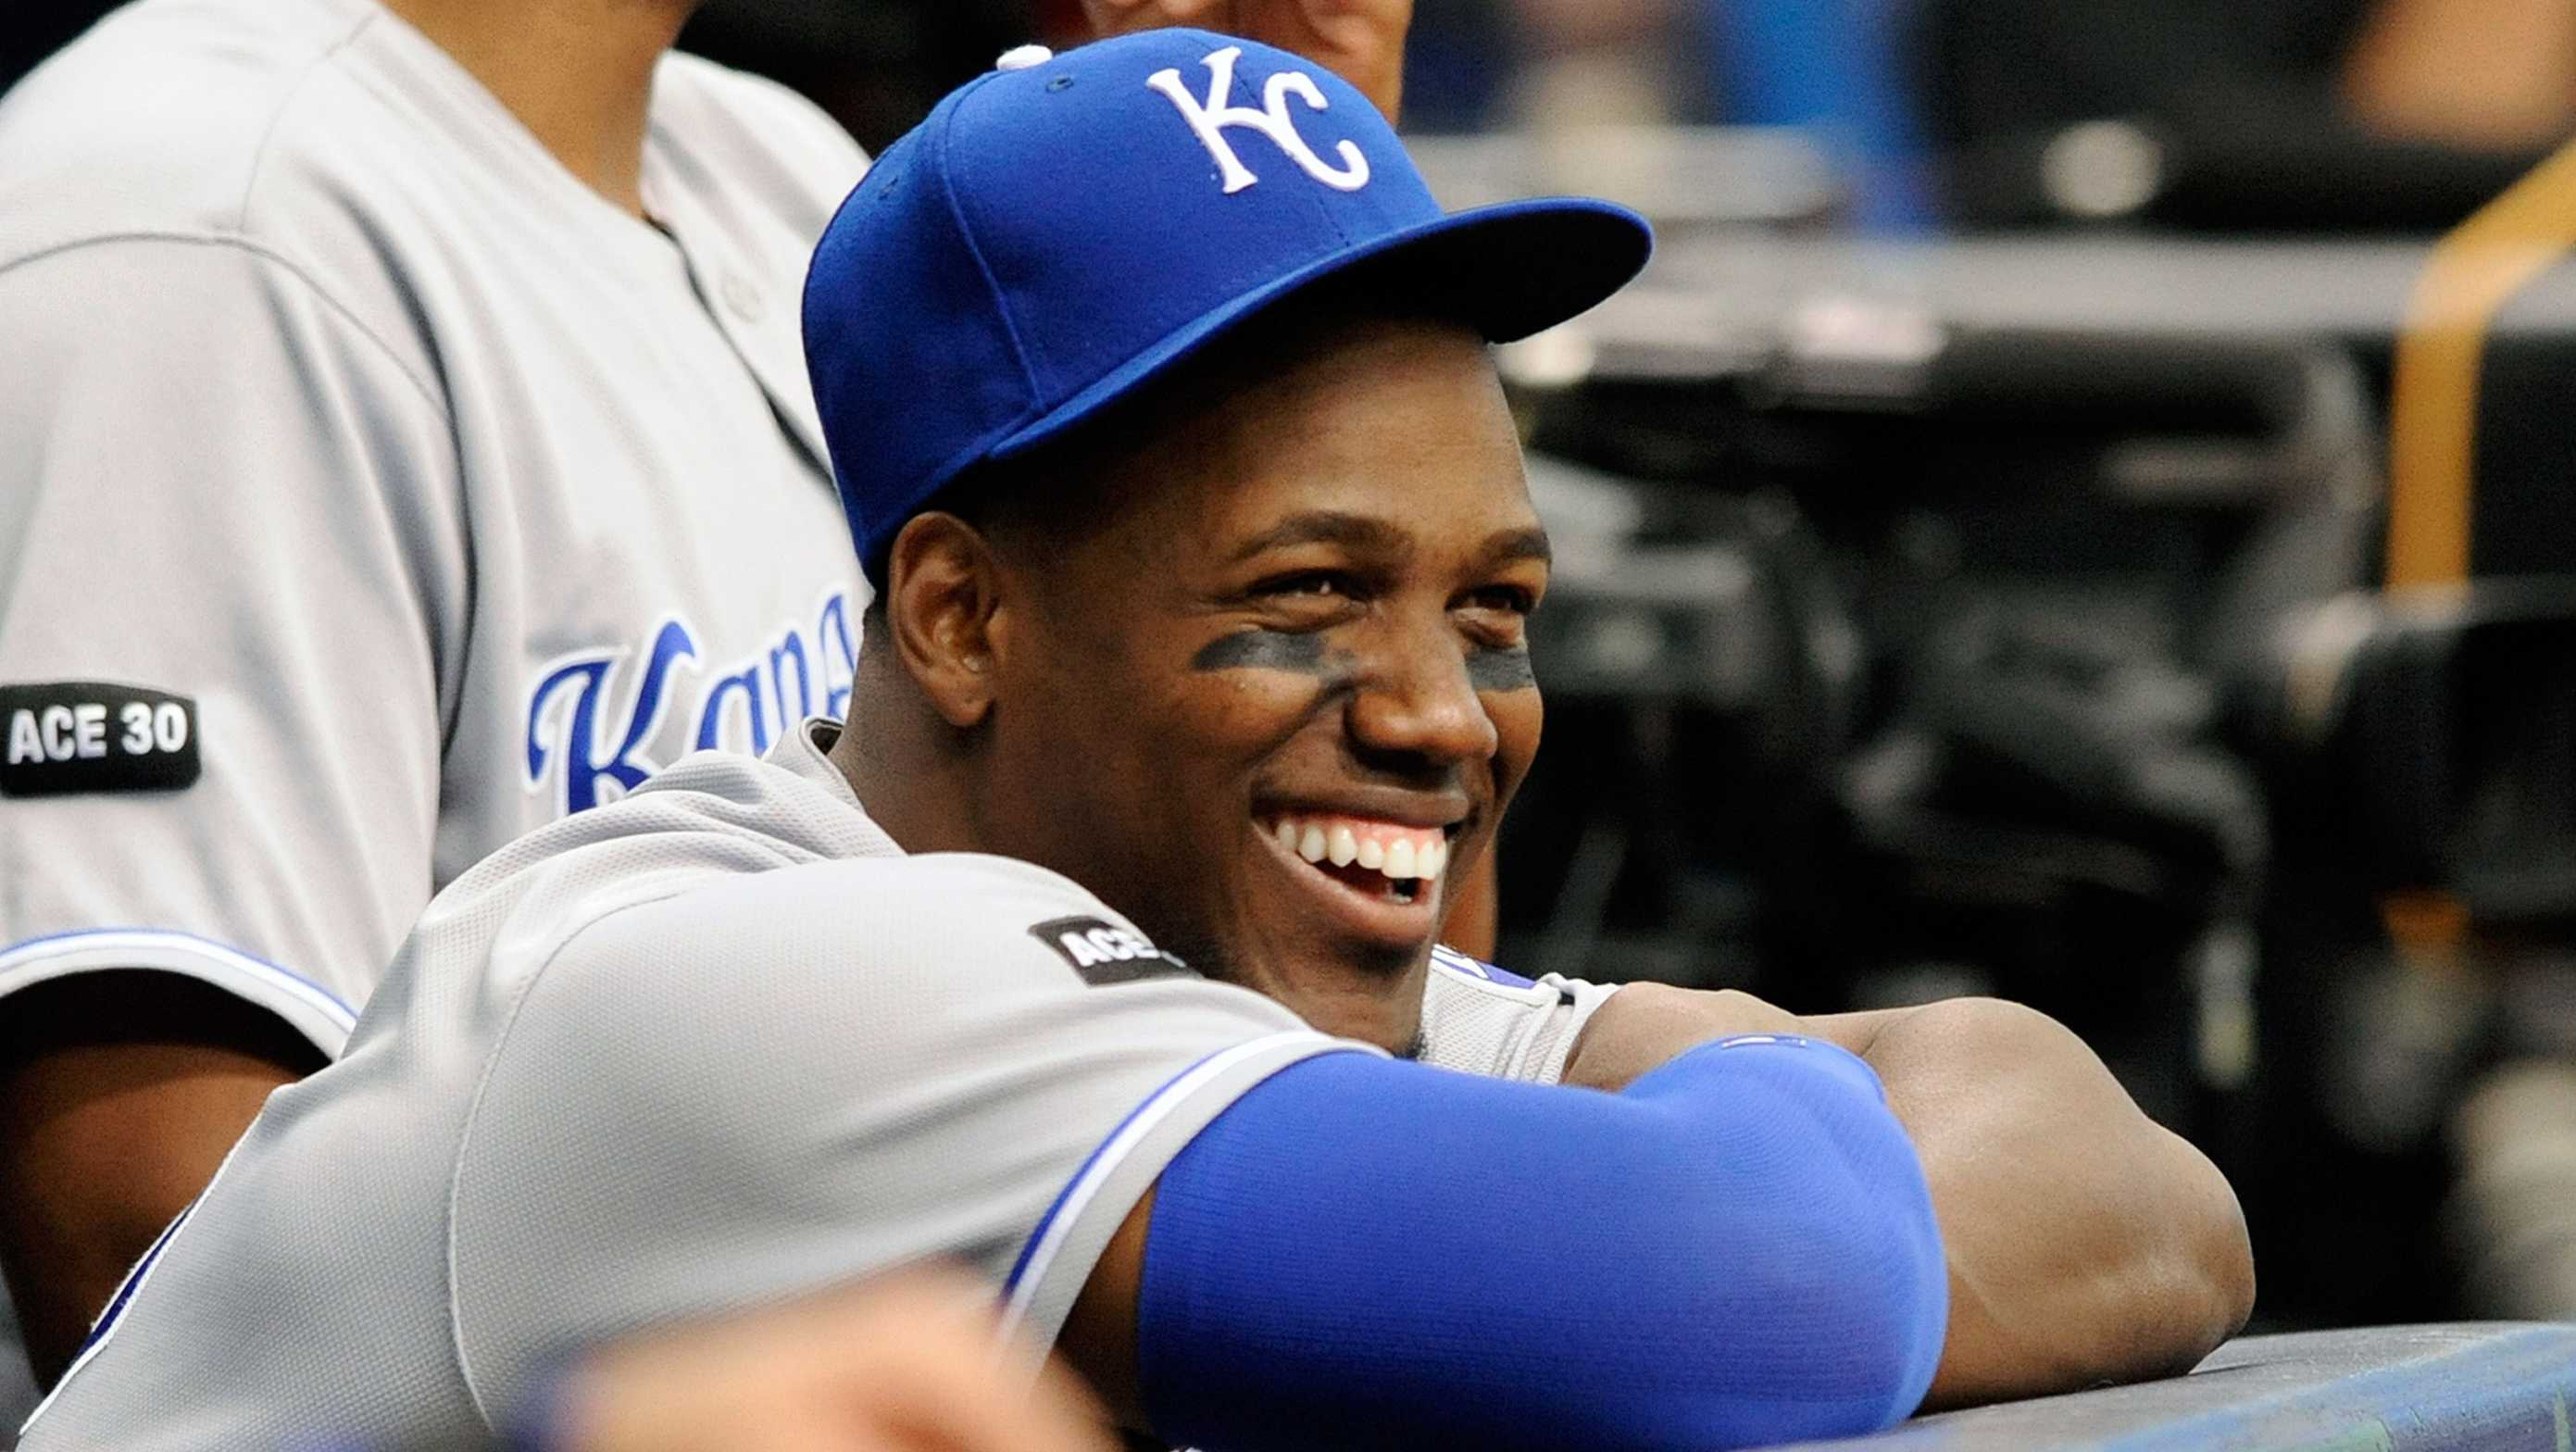 Kansas City Royals' Jorge Soler sits in the dugout during a baseball game against the Tampa Bay Rays Thursday, May 11, 2017, in St. Petersburg, Fla.